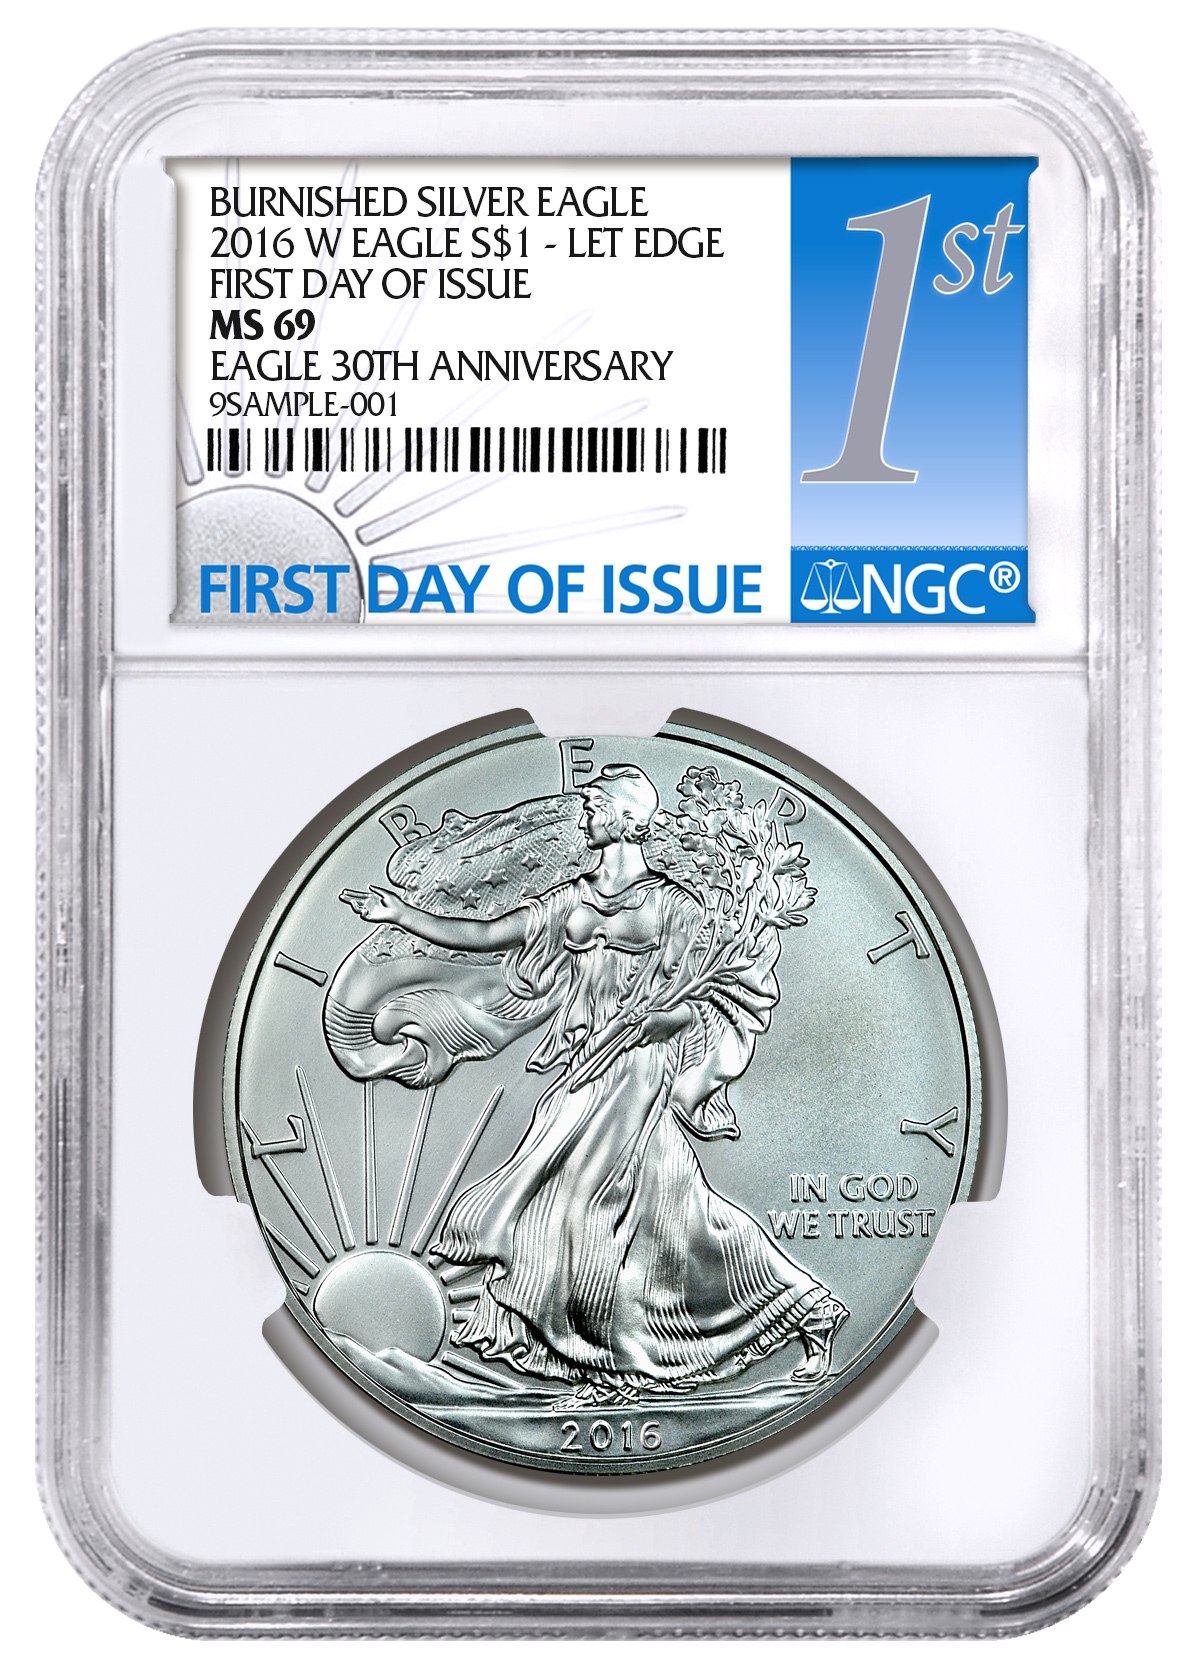 2016 W Burnished Silver Eagle Ngc Ms69 Fdi Moderncoinmart